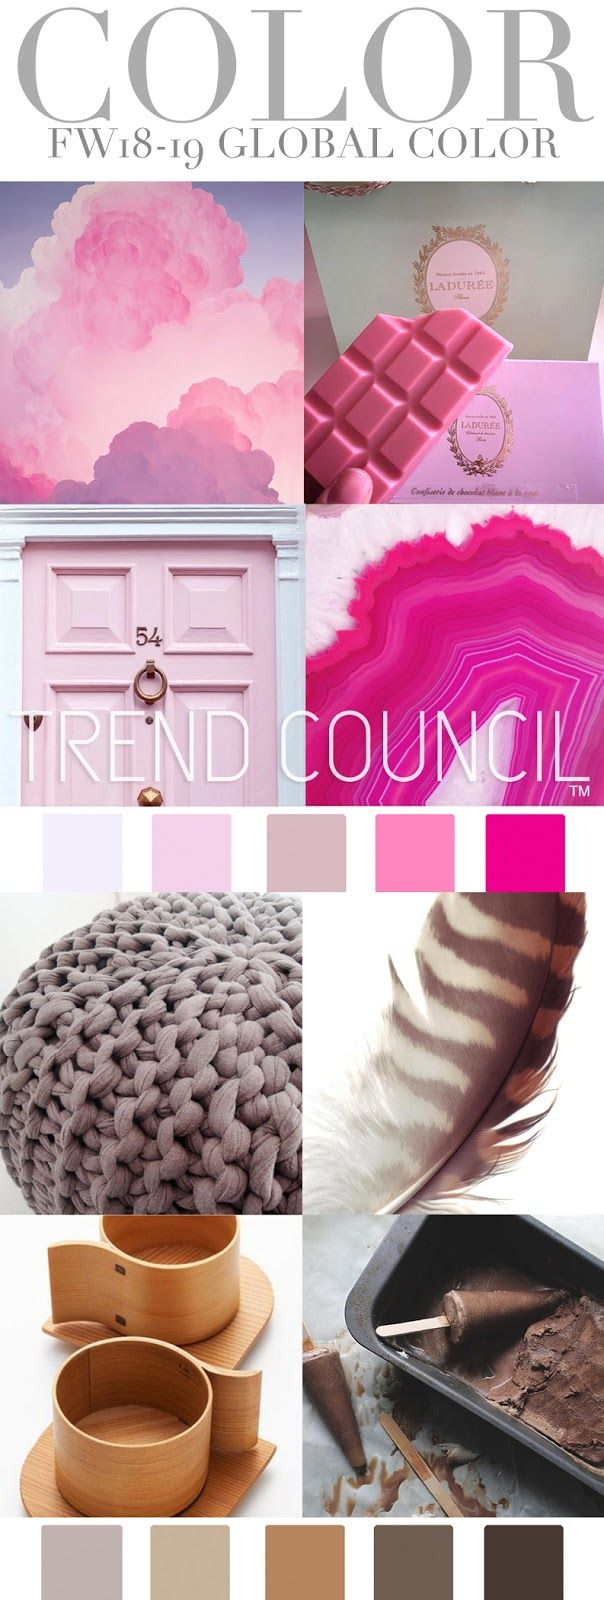 Trend Council is a fashion trend forecasting company who delivers expert analysis and design inspirations. Their team provides a great wealth of consulting services for all your company's design needs